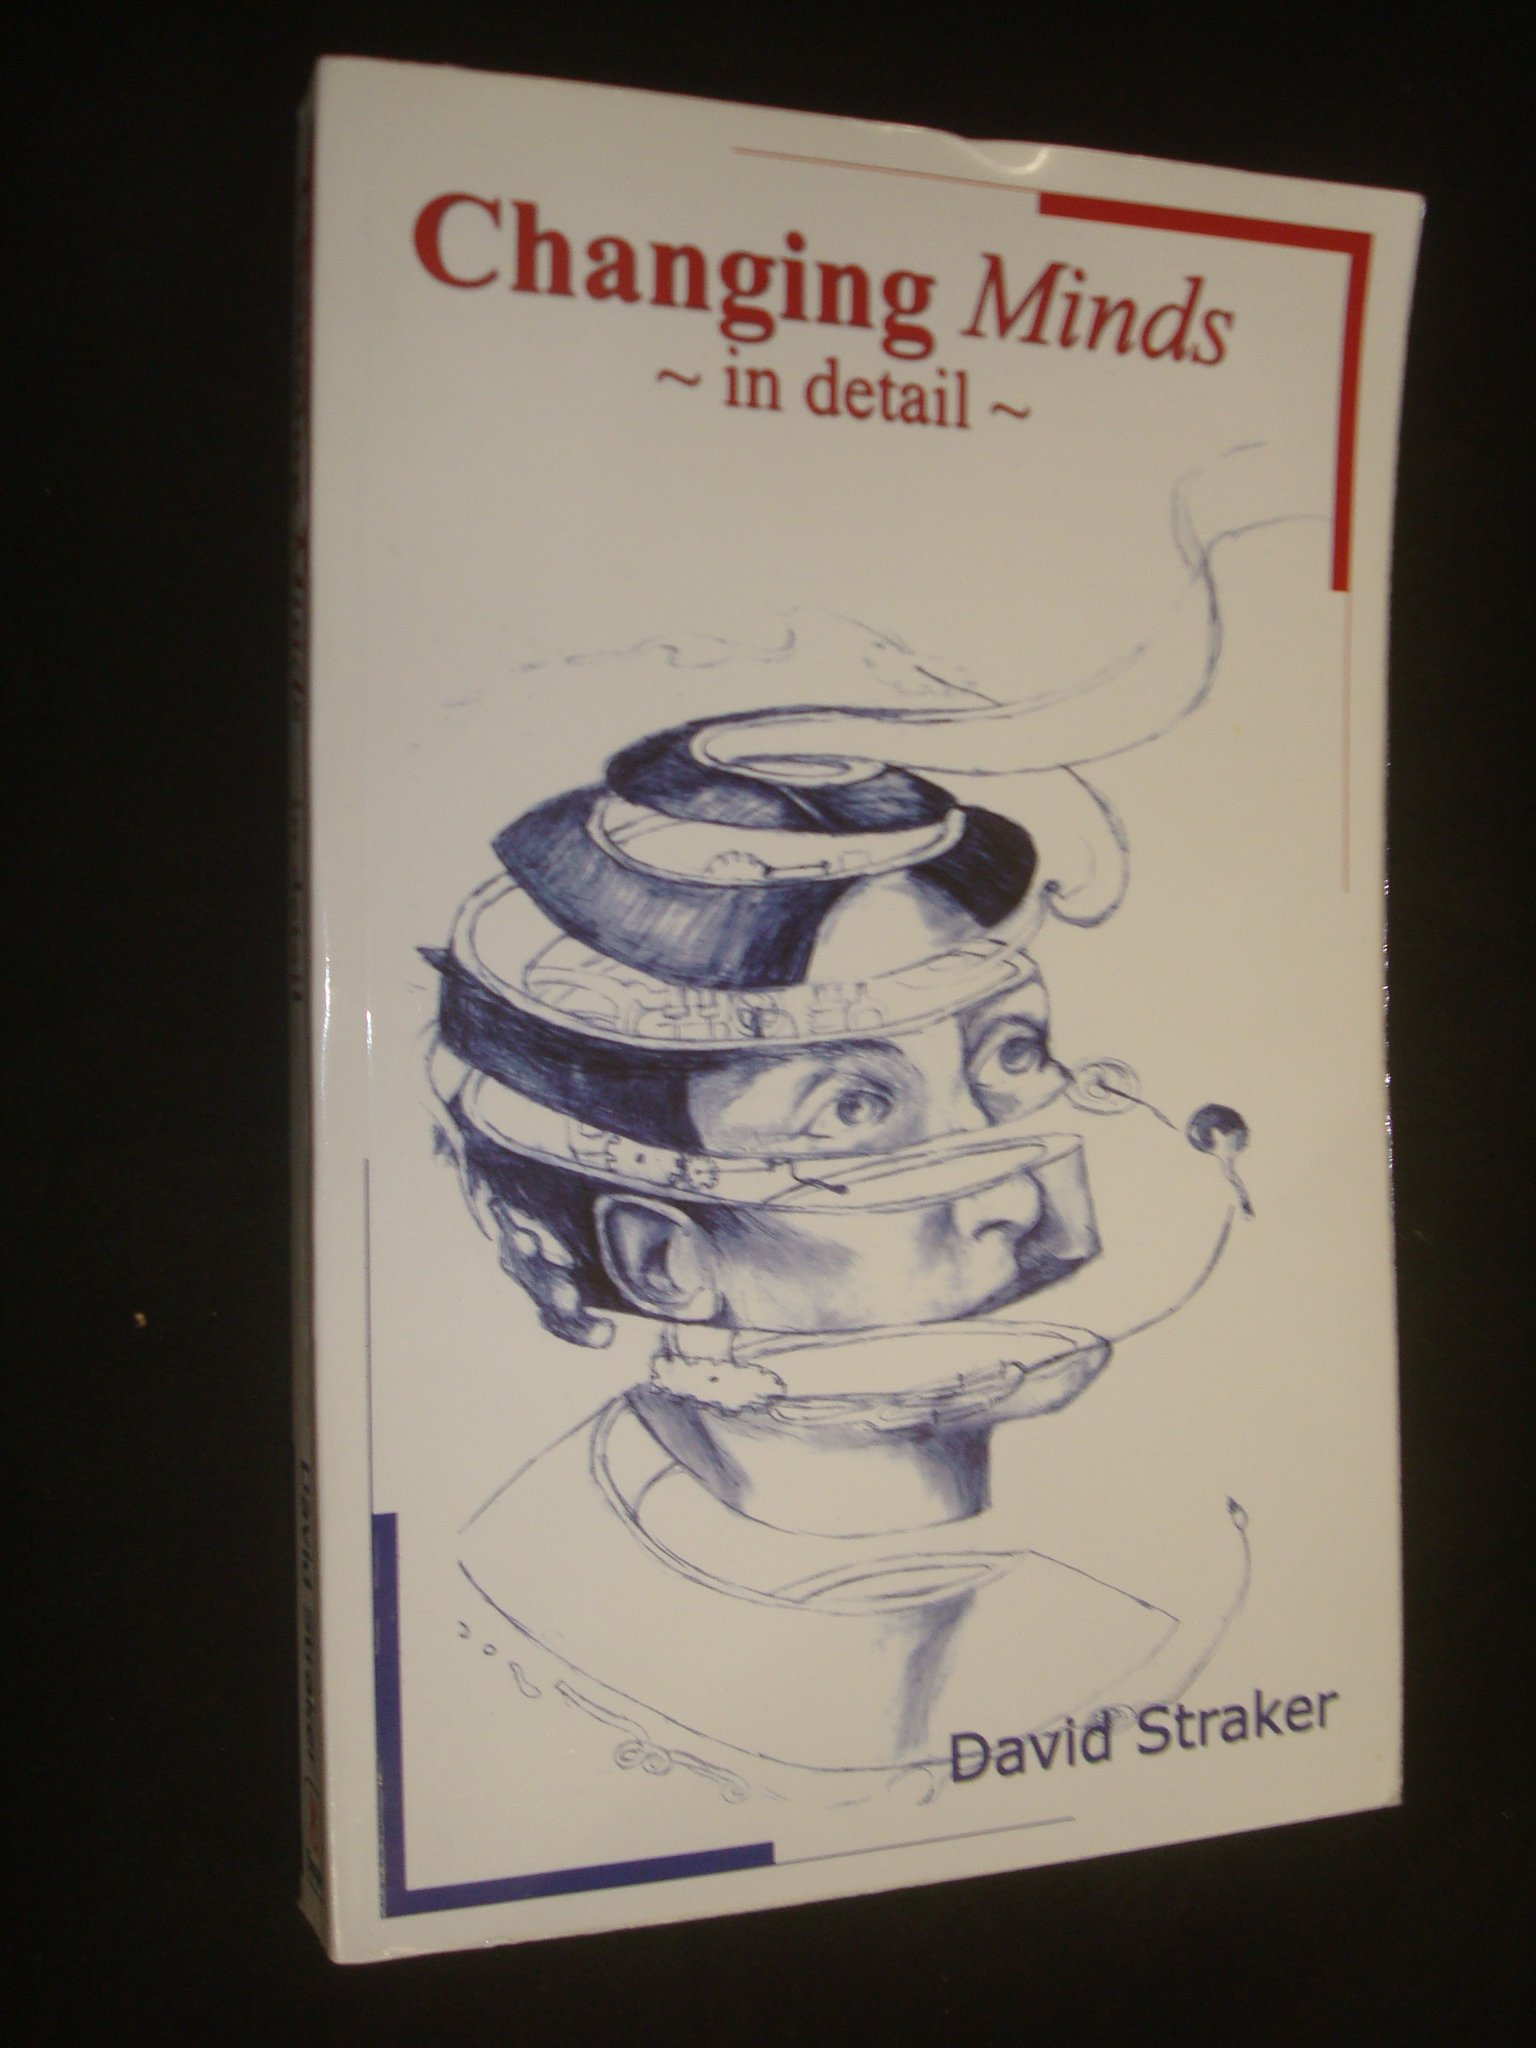 Changing minds david straker